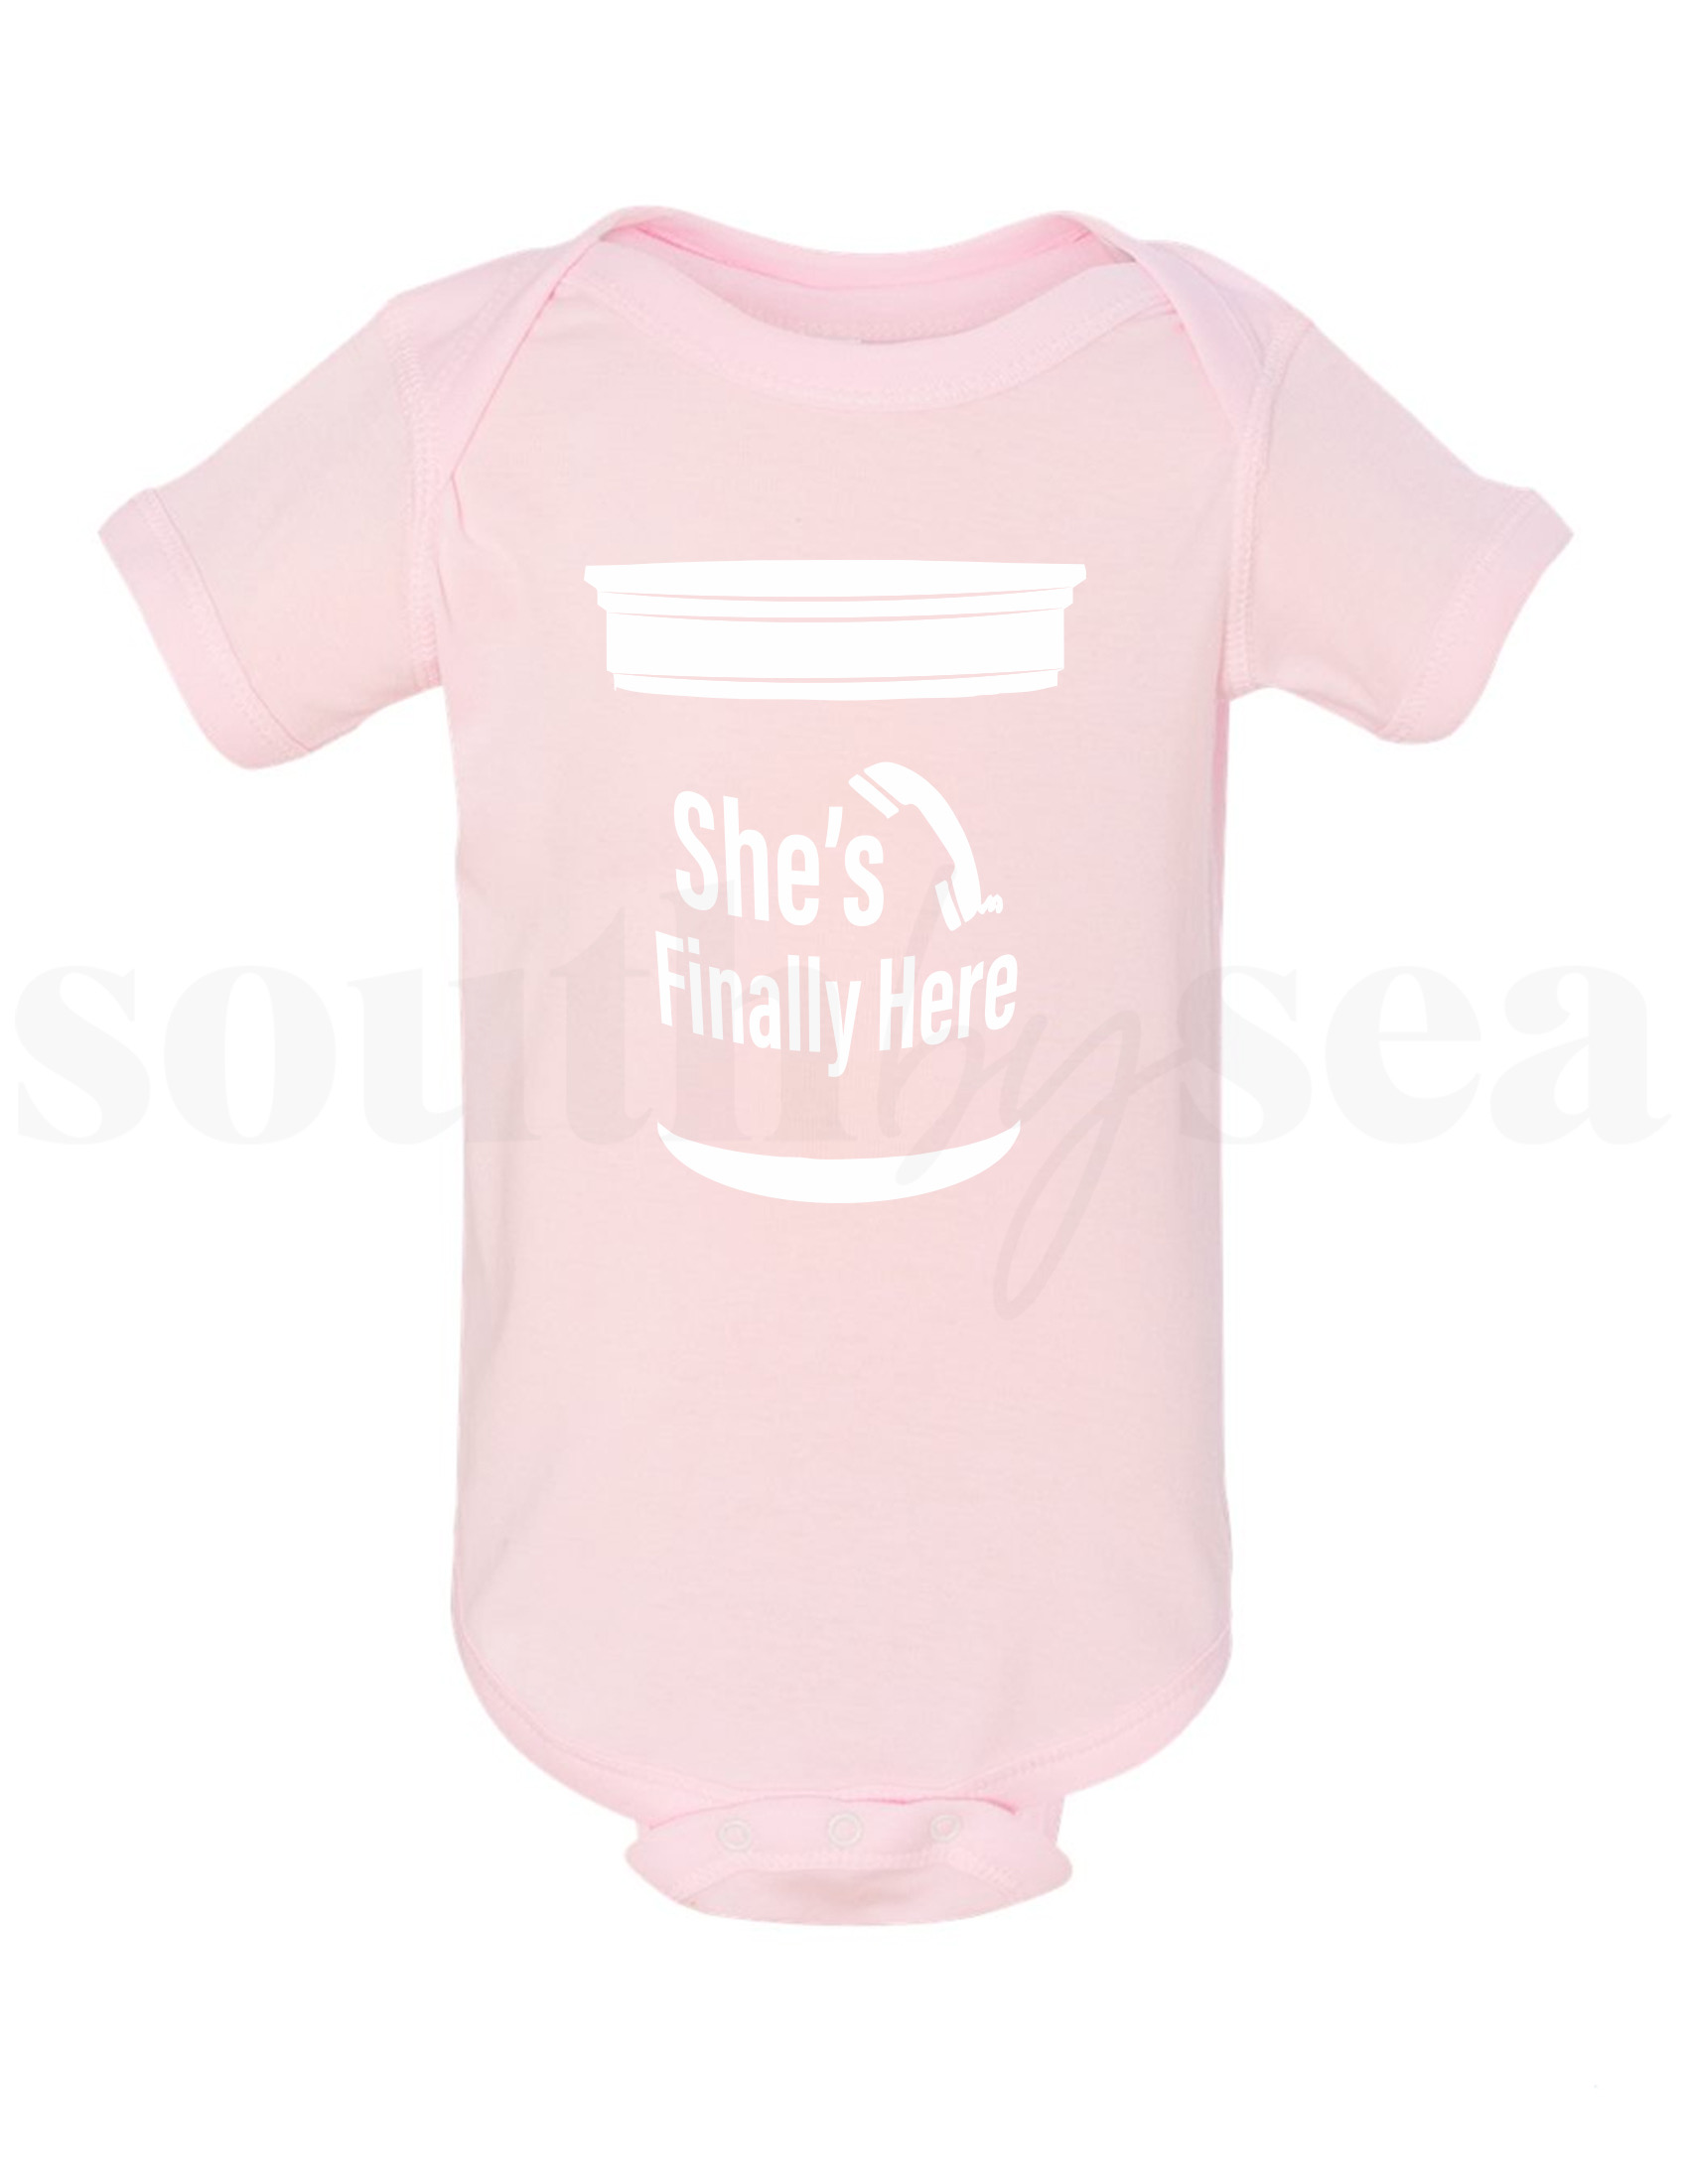 She's  / He's Finally Here Onesie